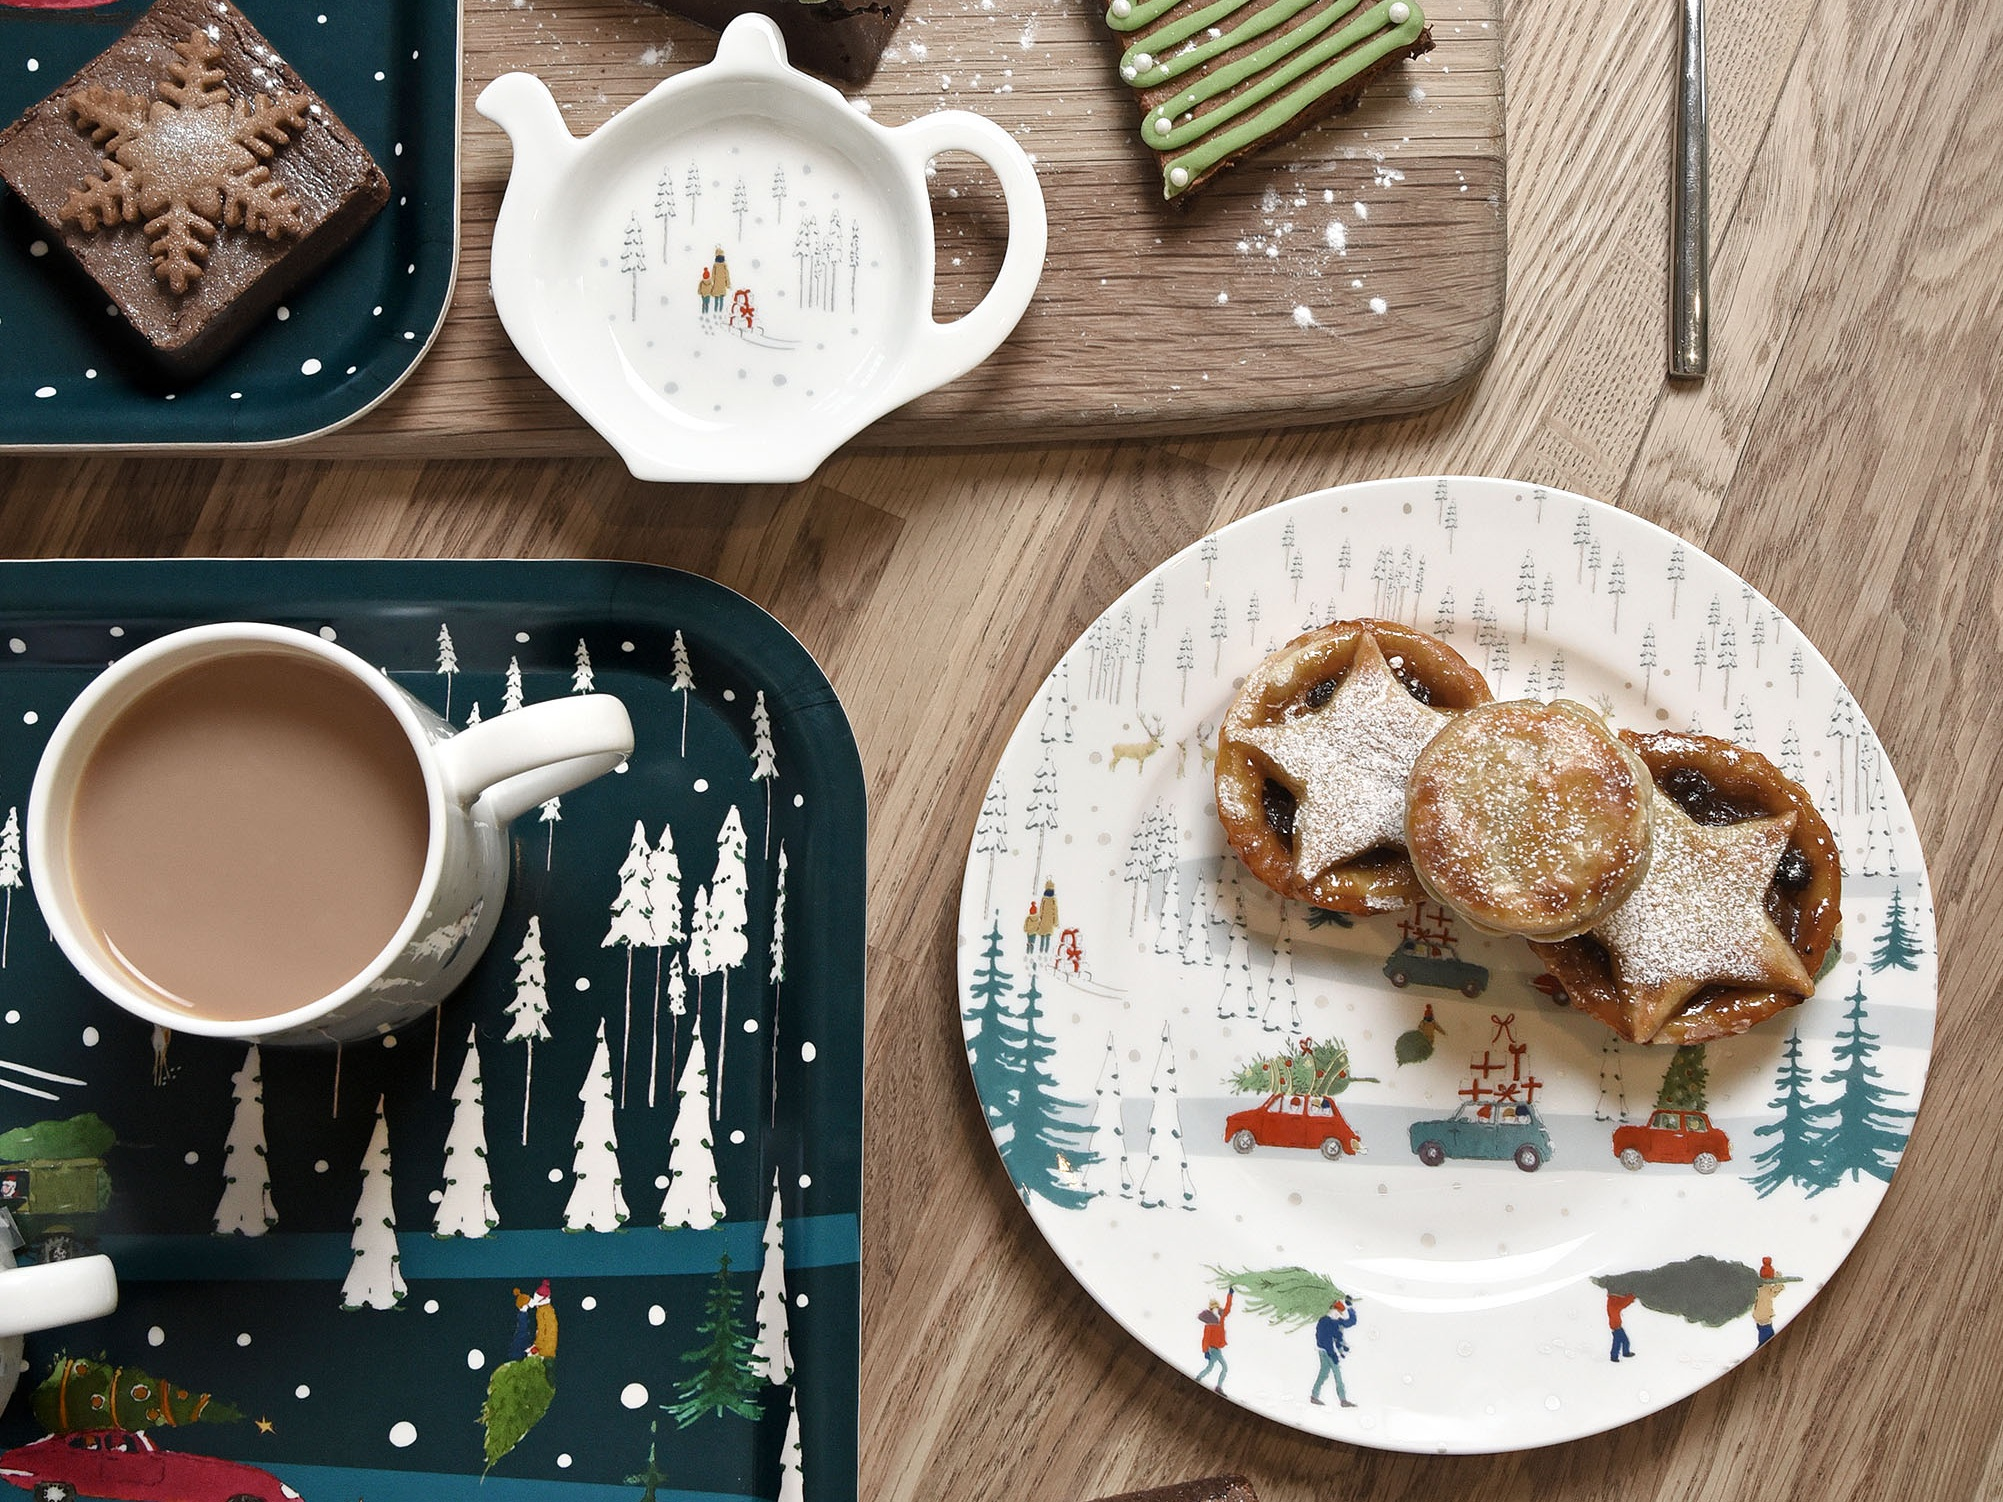 pl60020-tt6001-home-for-christmas-side-plate-and-tea-tidy-lifestyle-high-res.jpg